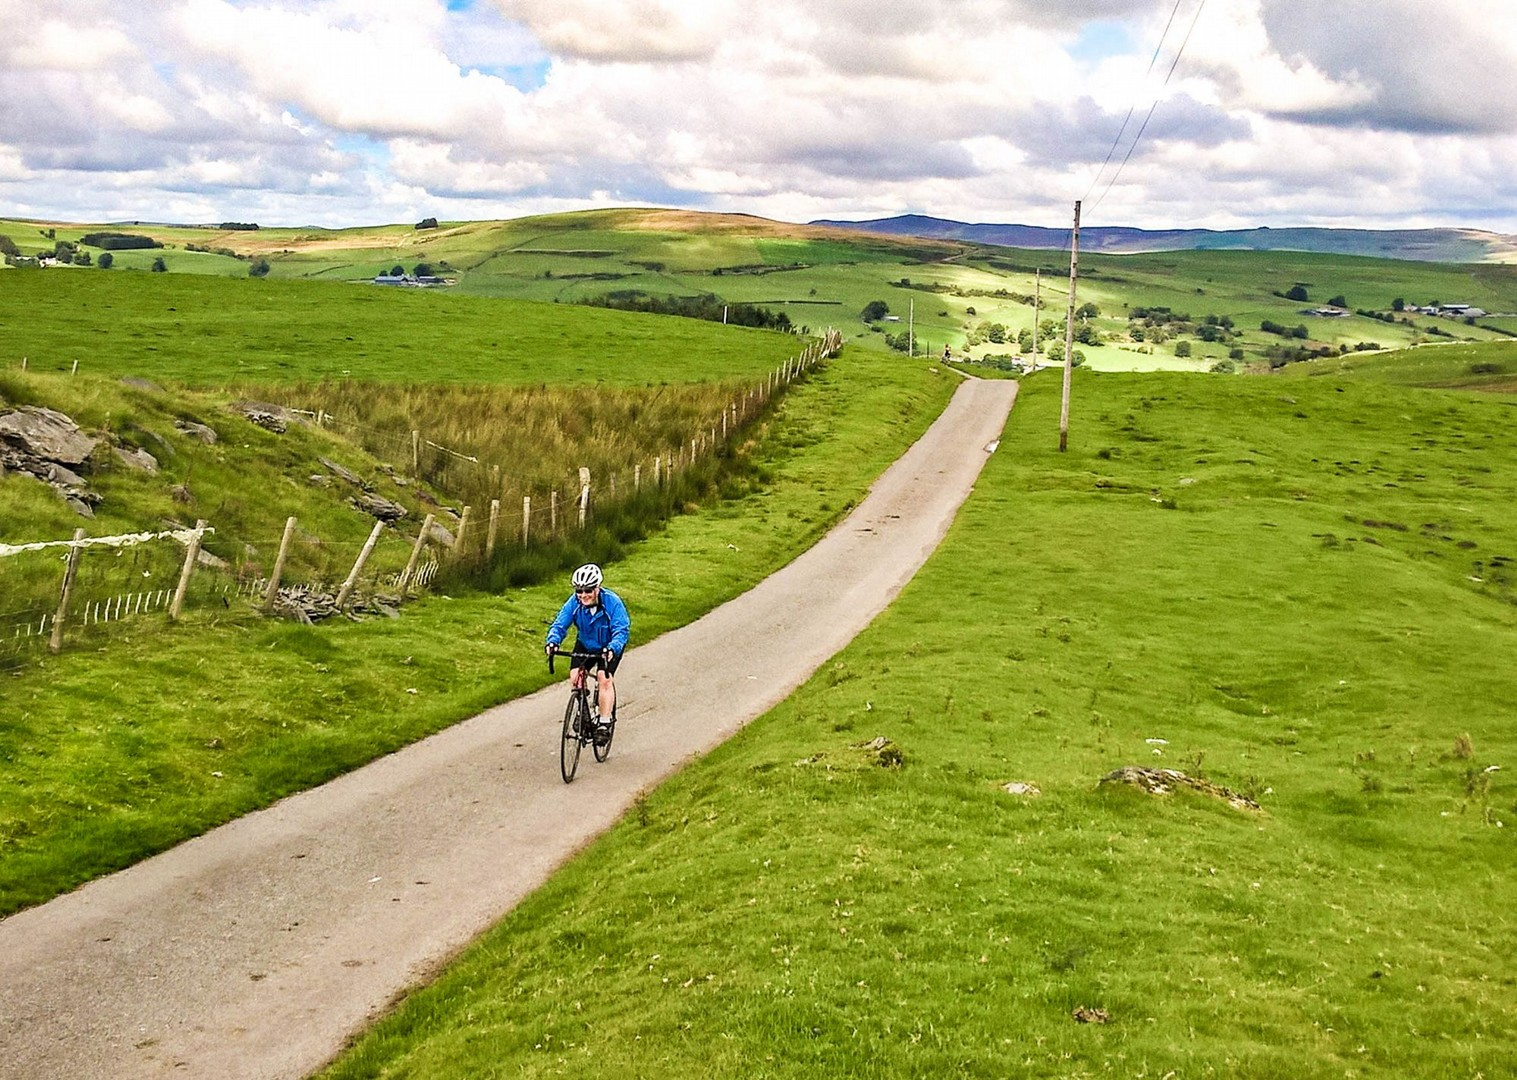 WP_20150831_13_31_27_Pro-2.jpg - UK - North Wales - Guided Road Cycling Weekend - Road Cycling